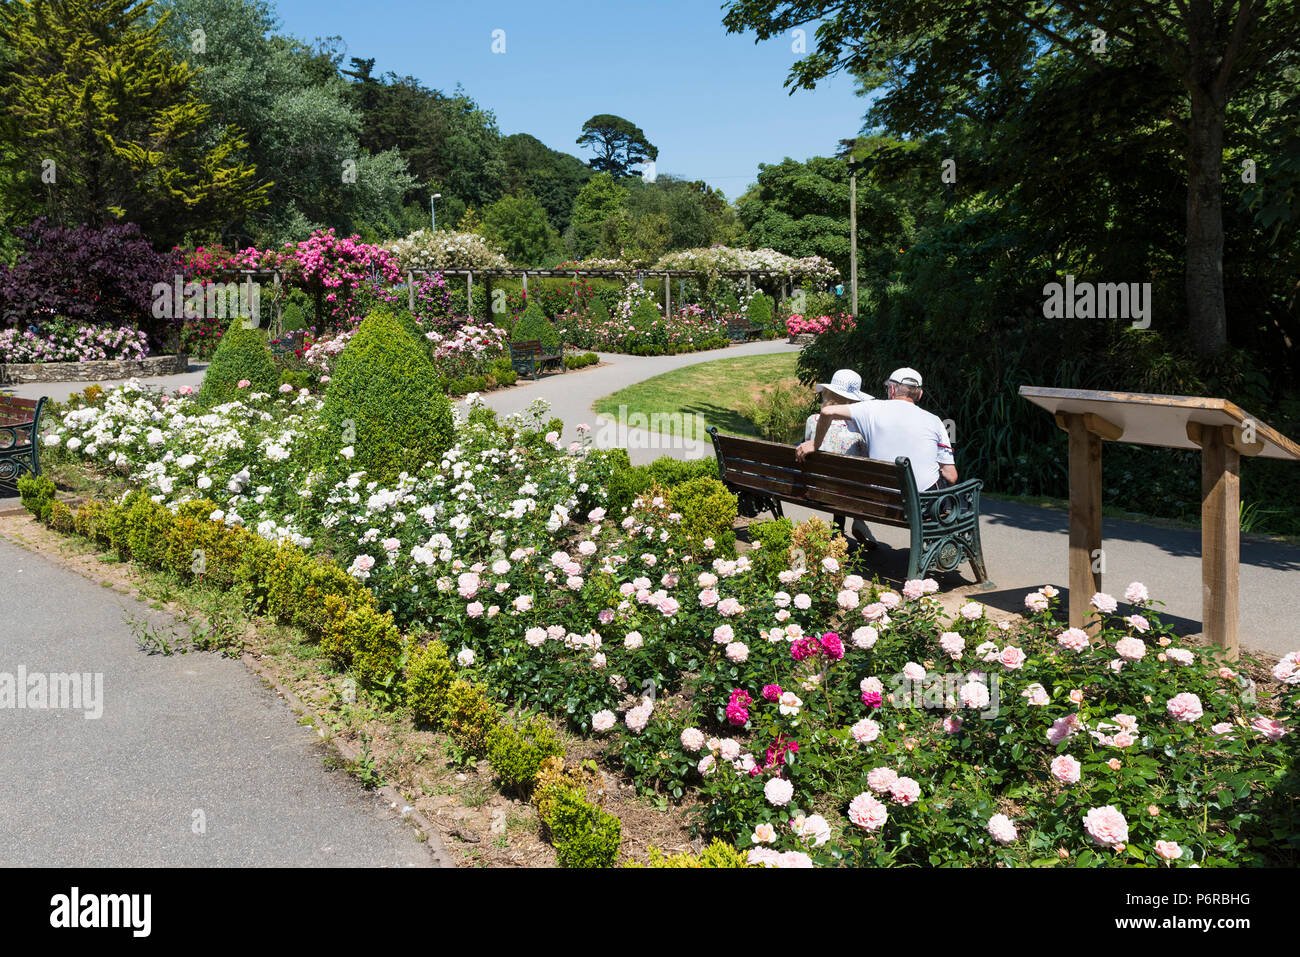 Holidaymakers relaxing in the award winning Rose Garden in Trenance Park in Newquay in Cornwall. - Stock Image